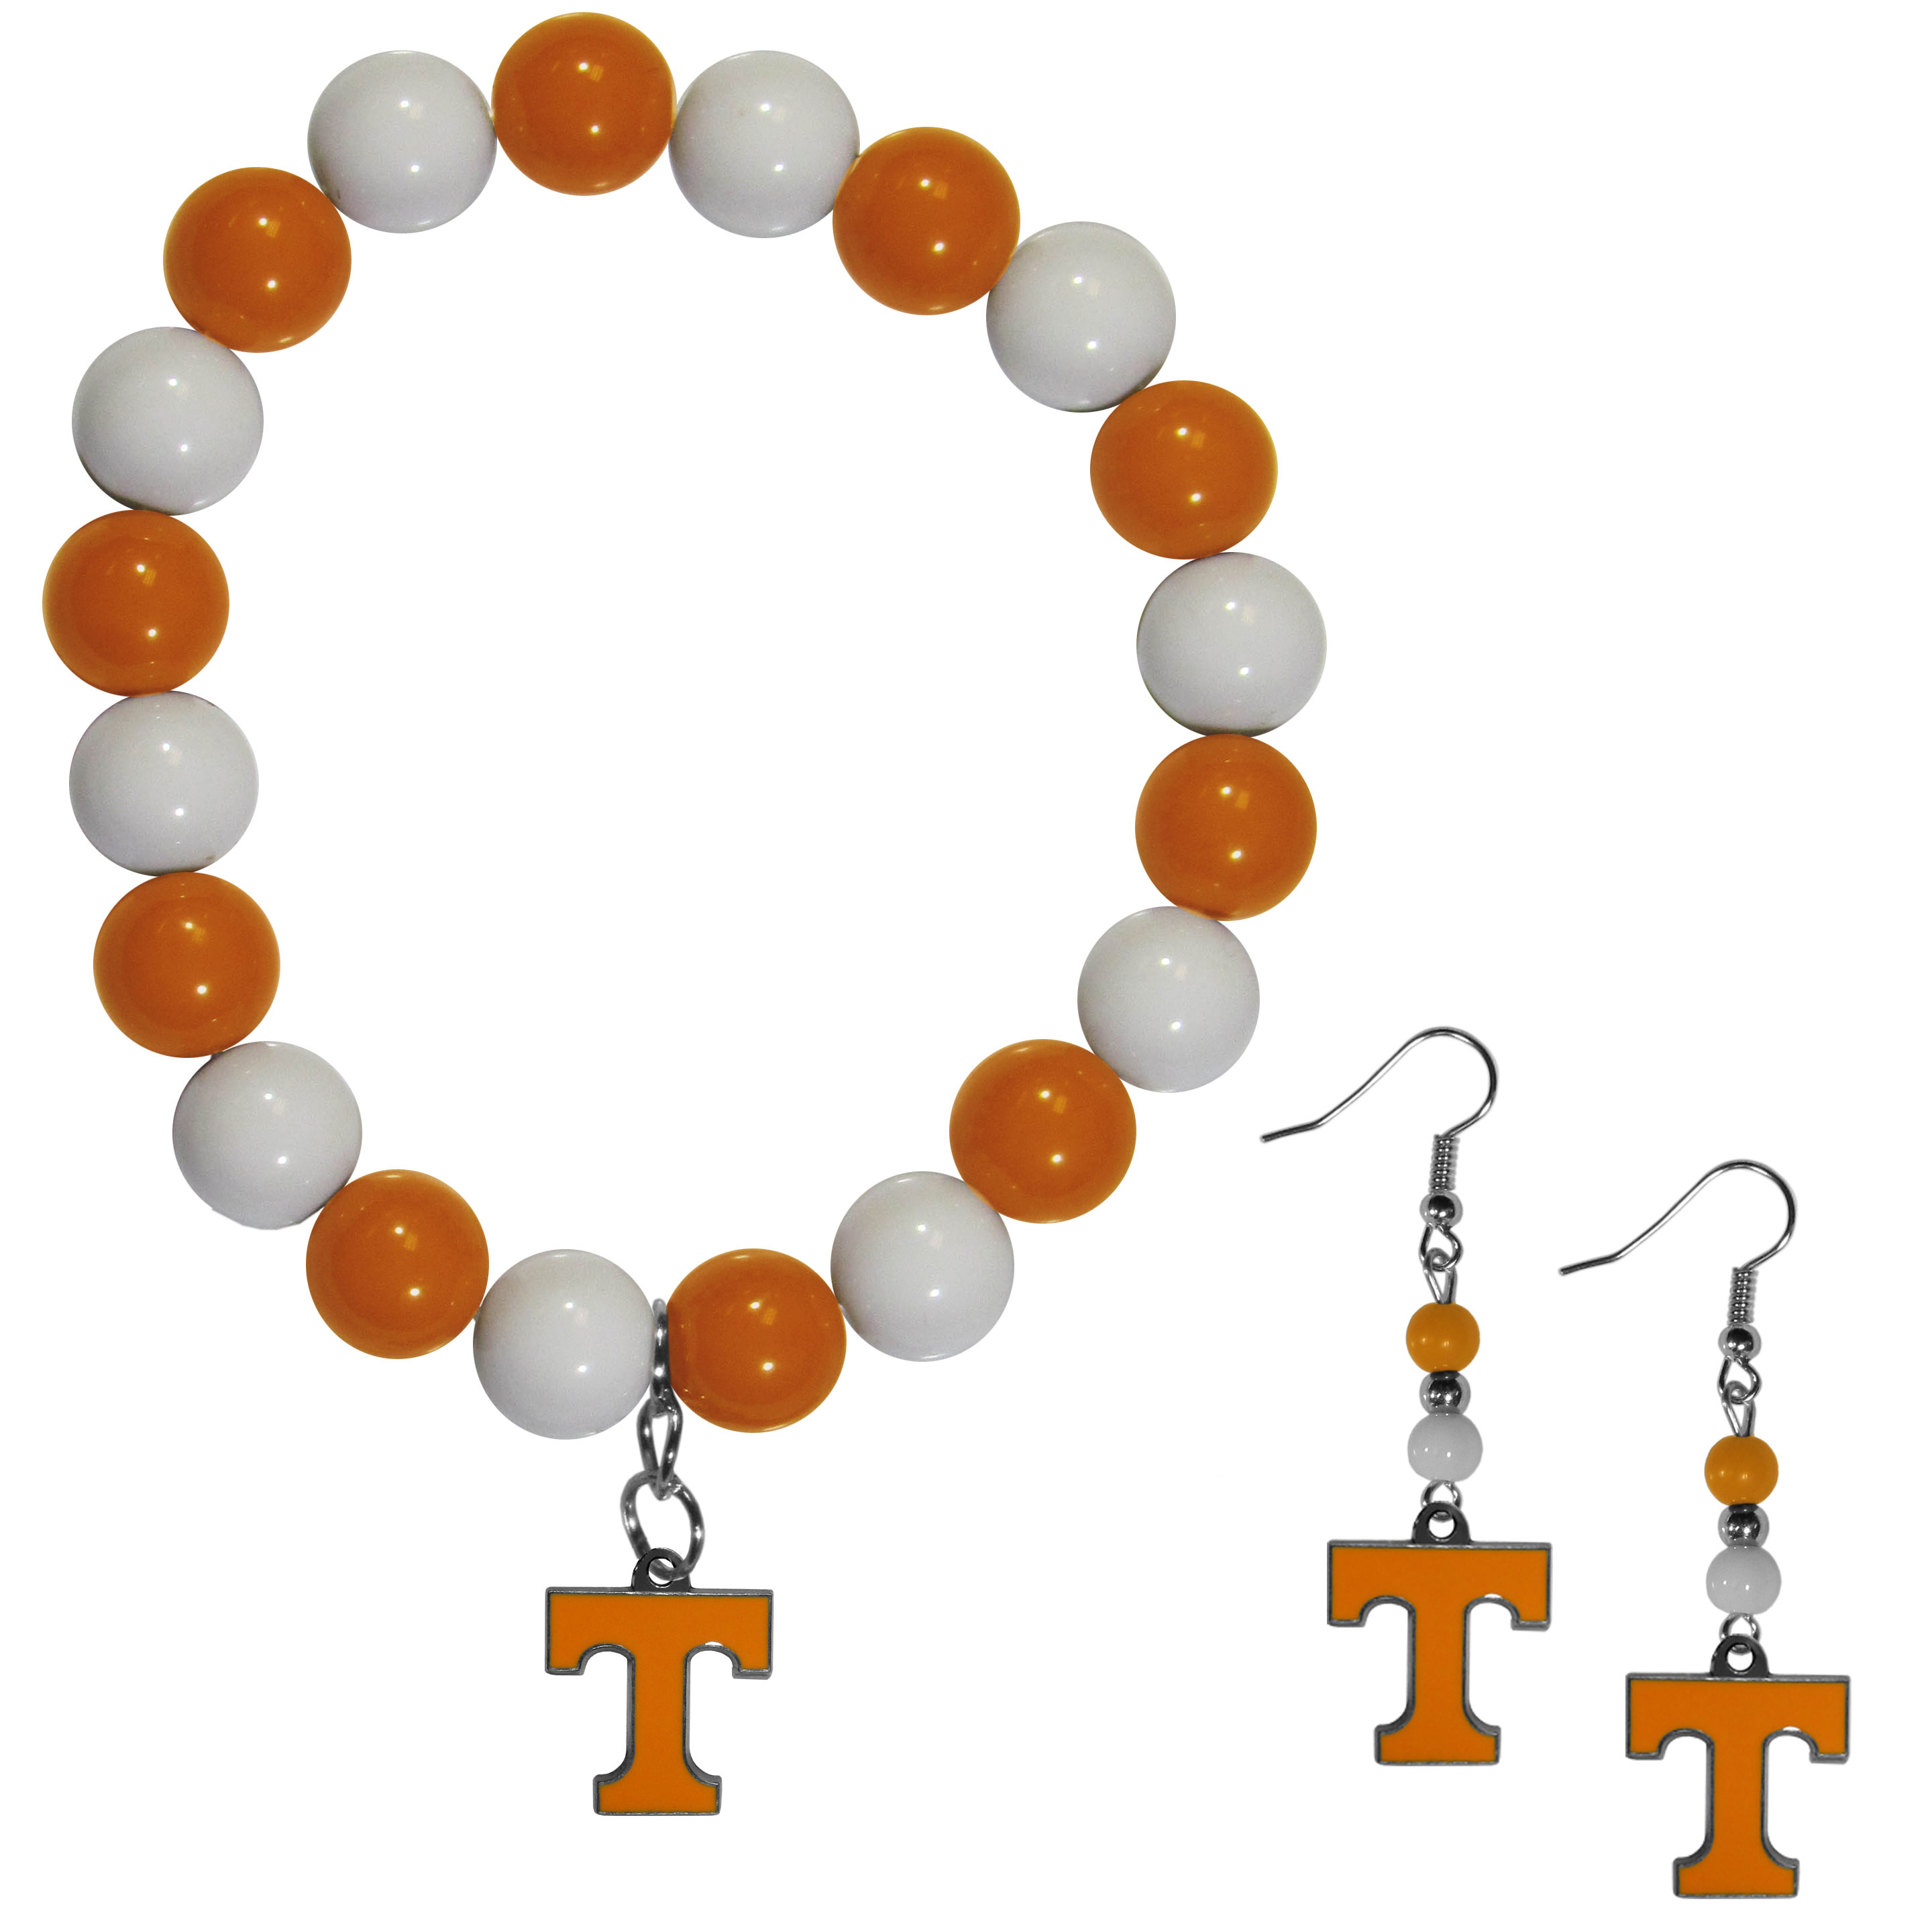 Tennessee Volunteers Fan Bead Earrings and Bracelet Set - This fun and colorful Tennessee Volunteers fan bead jewelry set is fun and casual with eye-catching beads in bright team colors. The fashionable dangle earrings feature a team colored beads that drop down to a carved and enameled charm. The stretch bracelet has larger matching beads that make a striking statement and have a matching team charm. These sassy yet sporty jewelry pieces make a perfect gift for any female fan. Spice up your game-day outfit with these fun colorful earrings and bracelet that are also cute enough for any day.